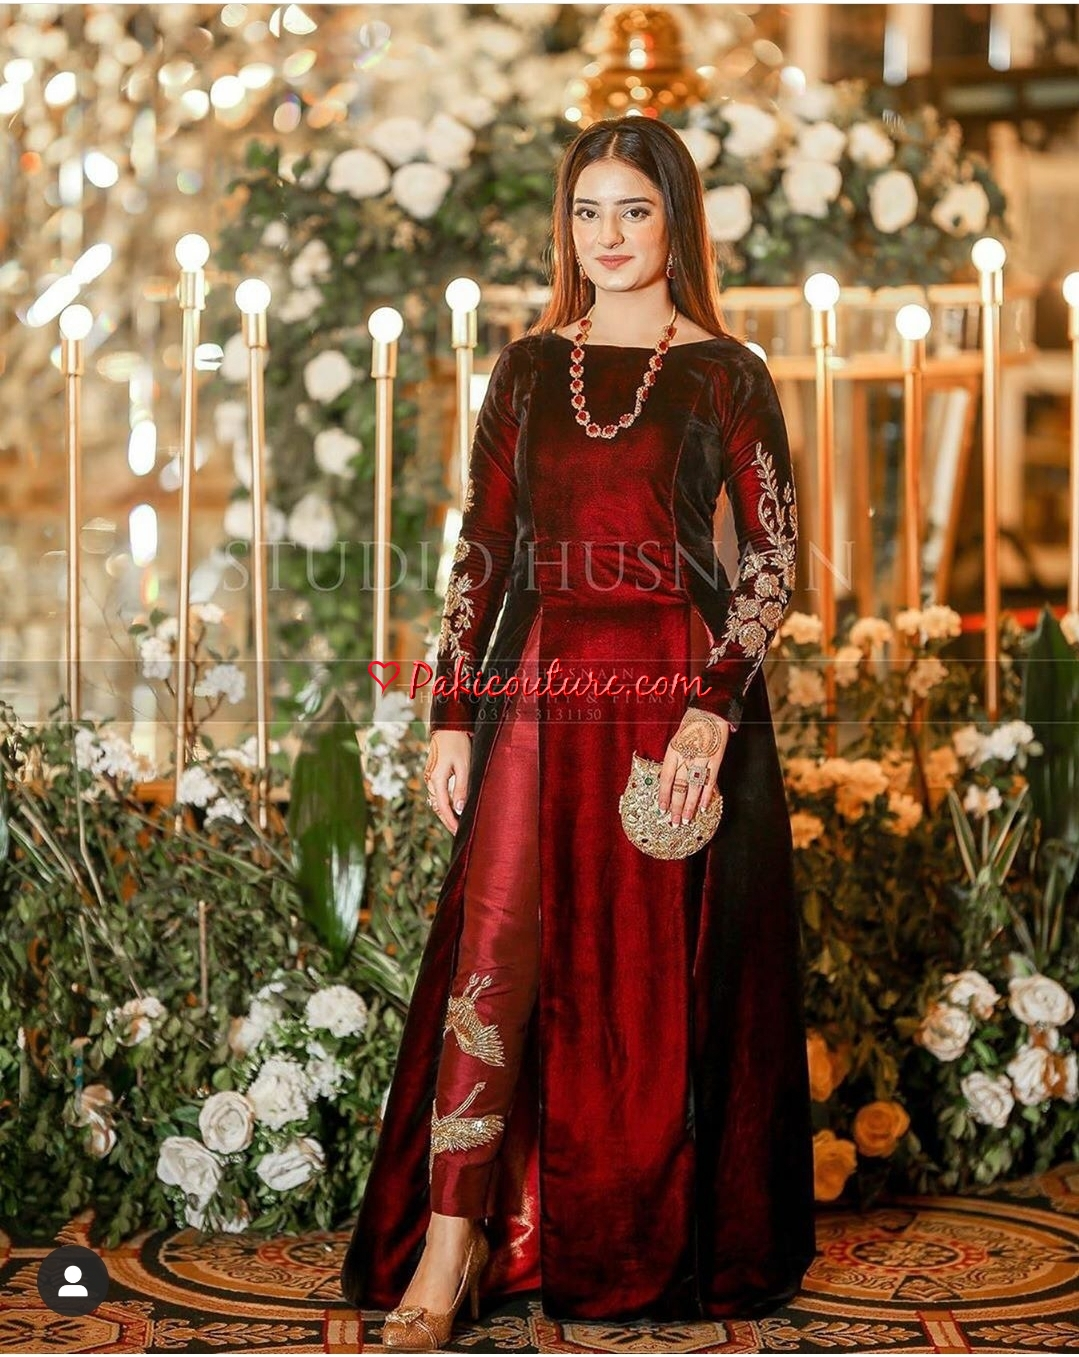 Maxi Gowns Latest Designer Collection Occasional Dresses Shop Online At Pakicouture Buy Pakistani Fashion Dresses Pakistani Branded Latest Clothes,Rose Gold Wedding Theme Bridesmaid Dresses